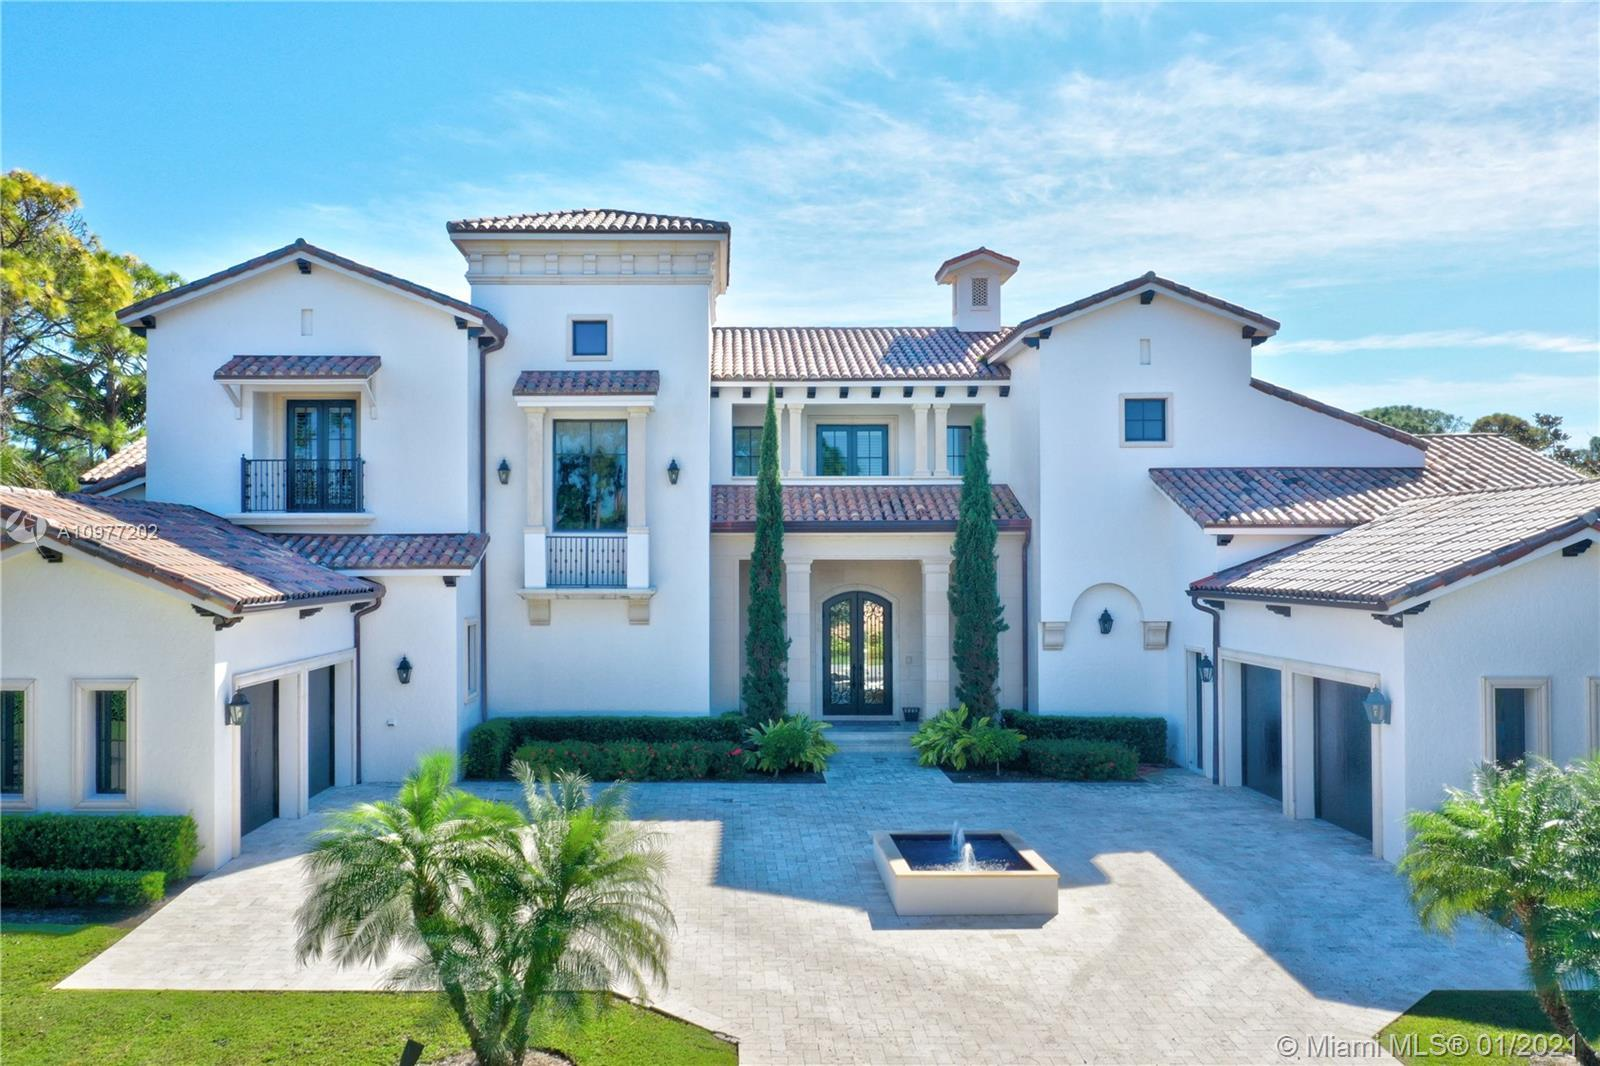 Enjoy the elegance of this this custom, over 9,000 square ft estate located in the exclusive Bears C